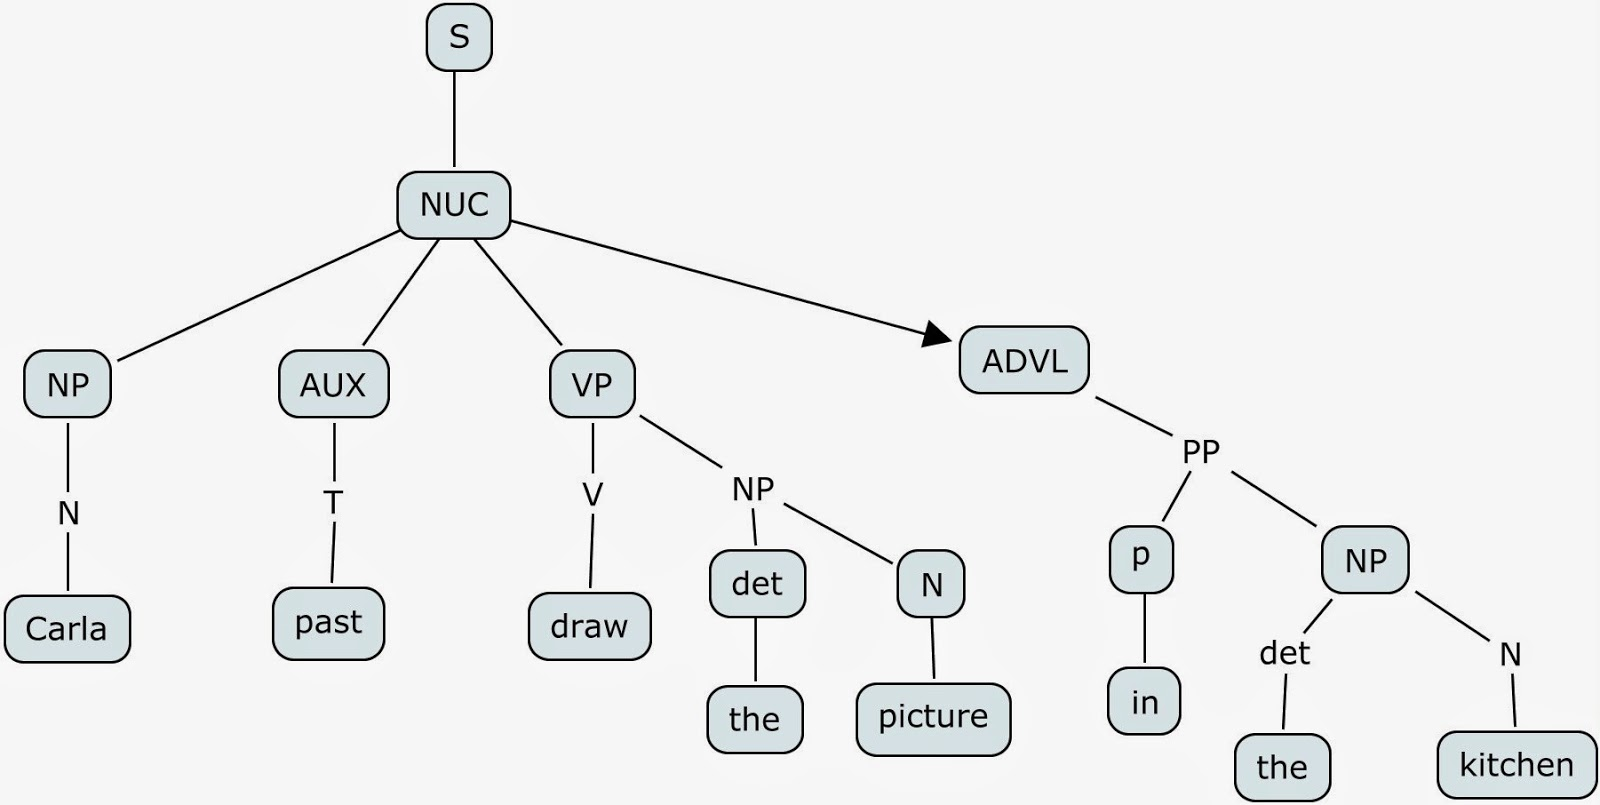 Non restrictive relative clauses syntax ii tree diagram for adverbials tree diagram for reduction of relative clauses ccuart Gallery